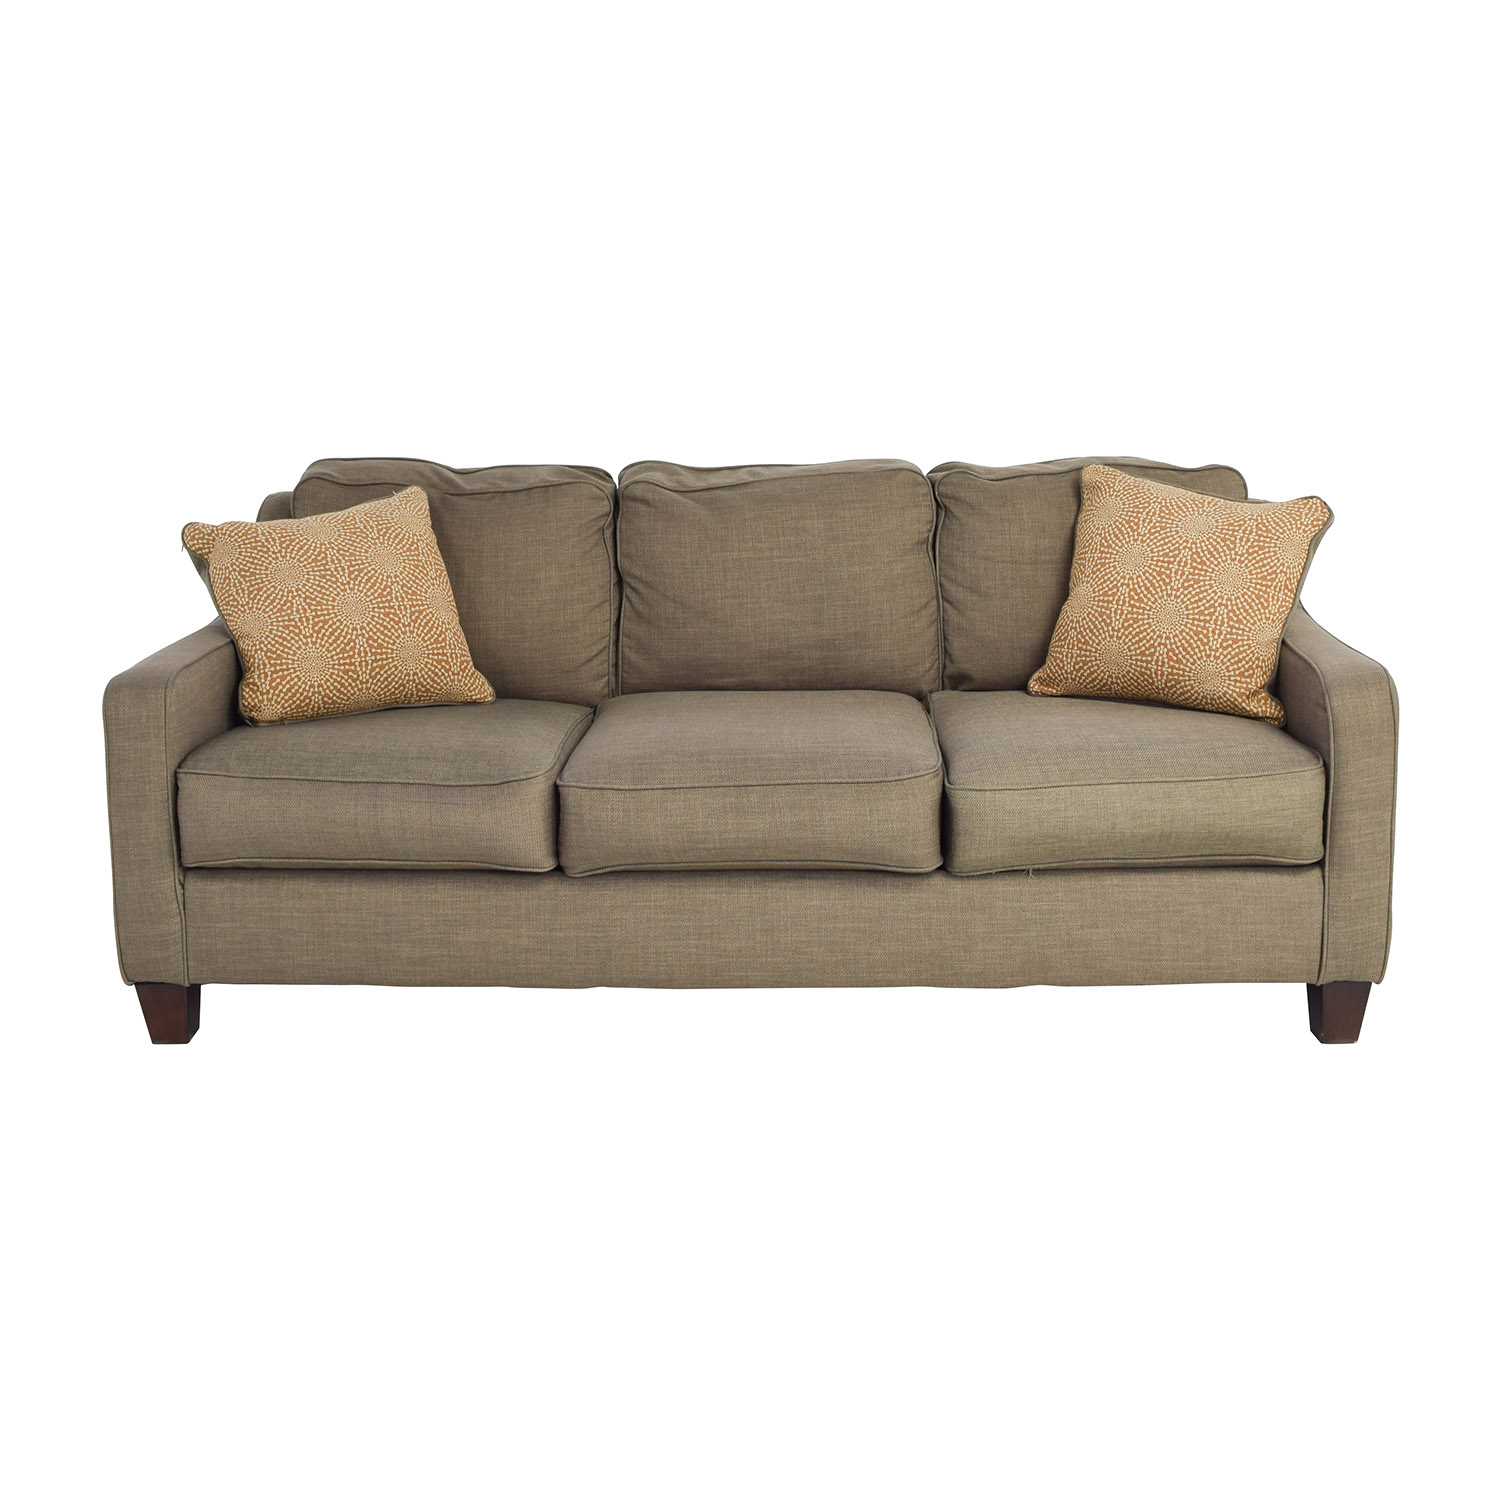 Belona Luna Sofa On A Budget